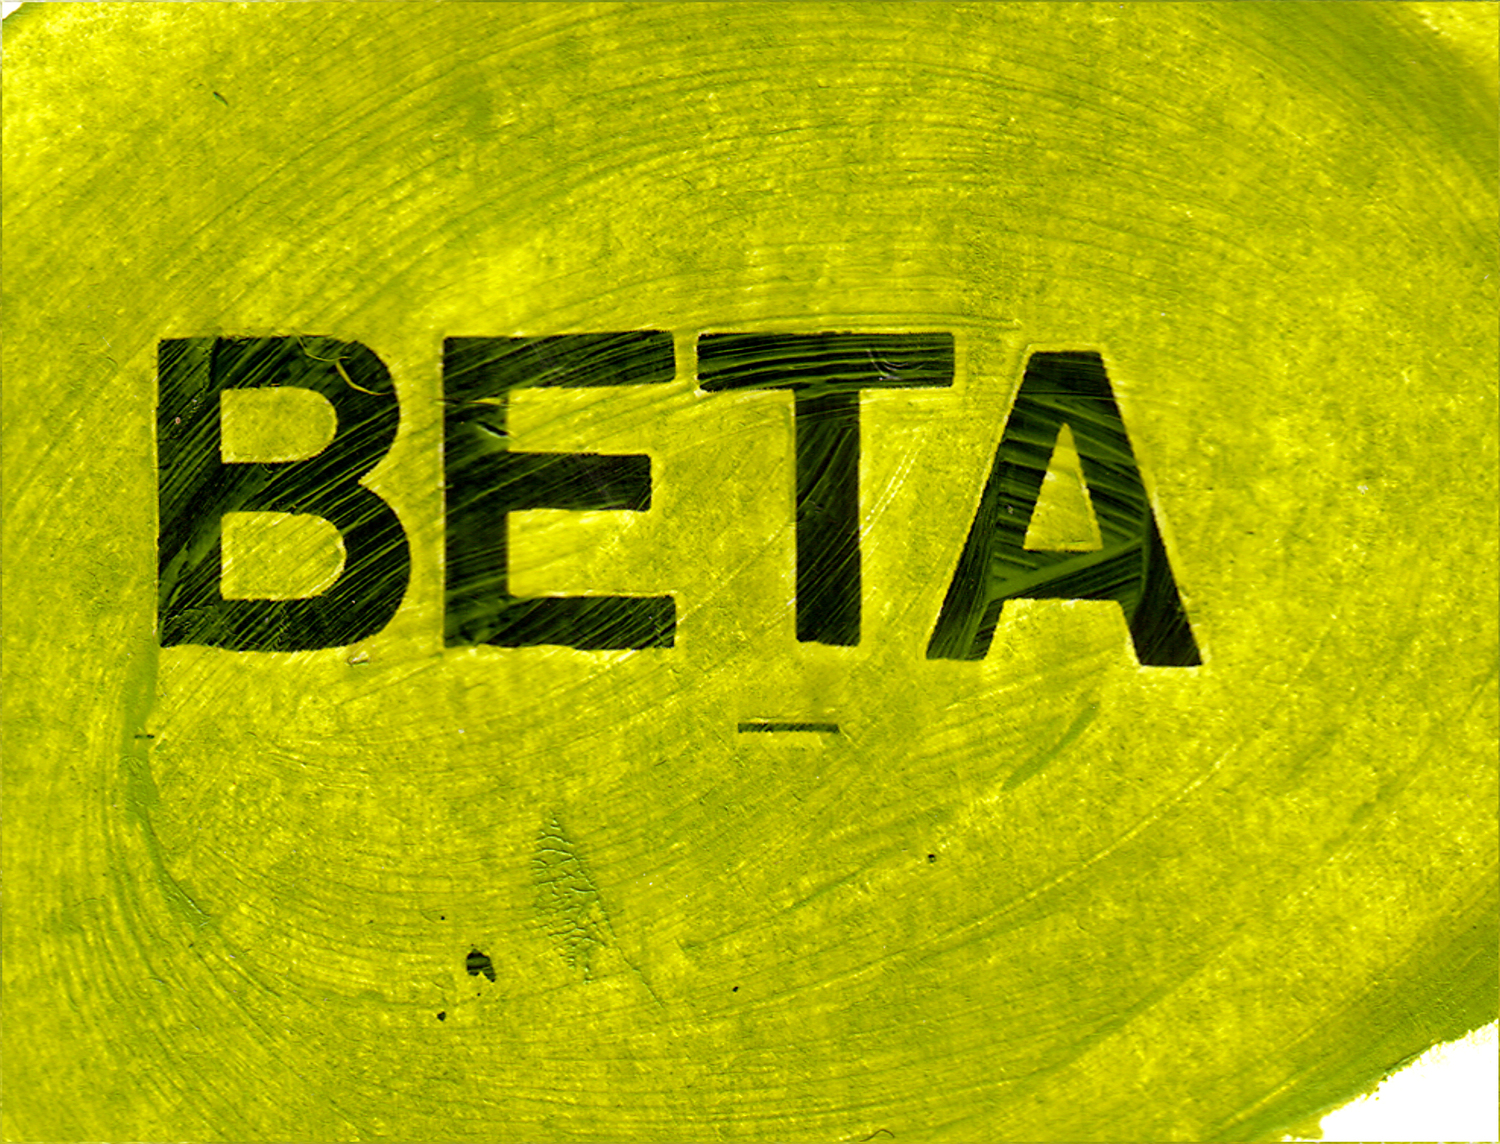 BETA Theater  7eba07e23